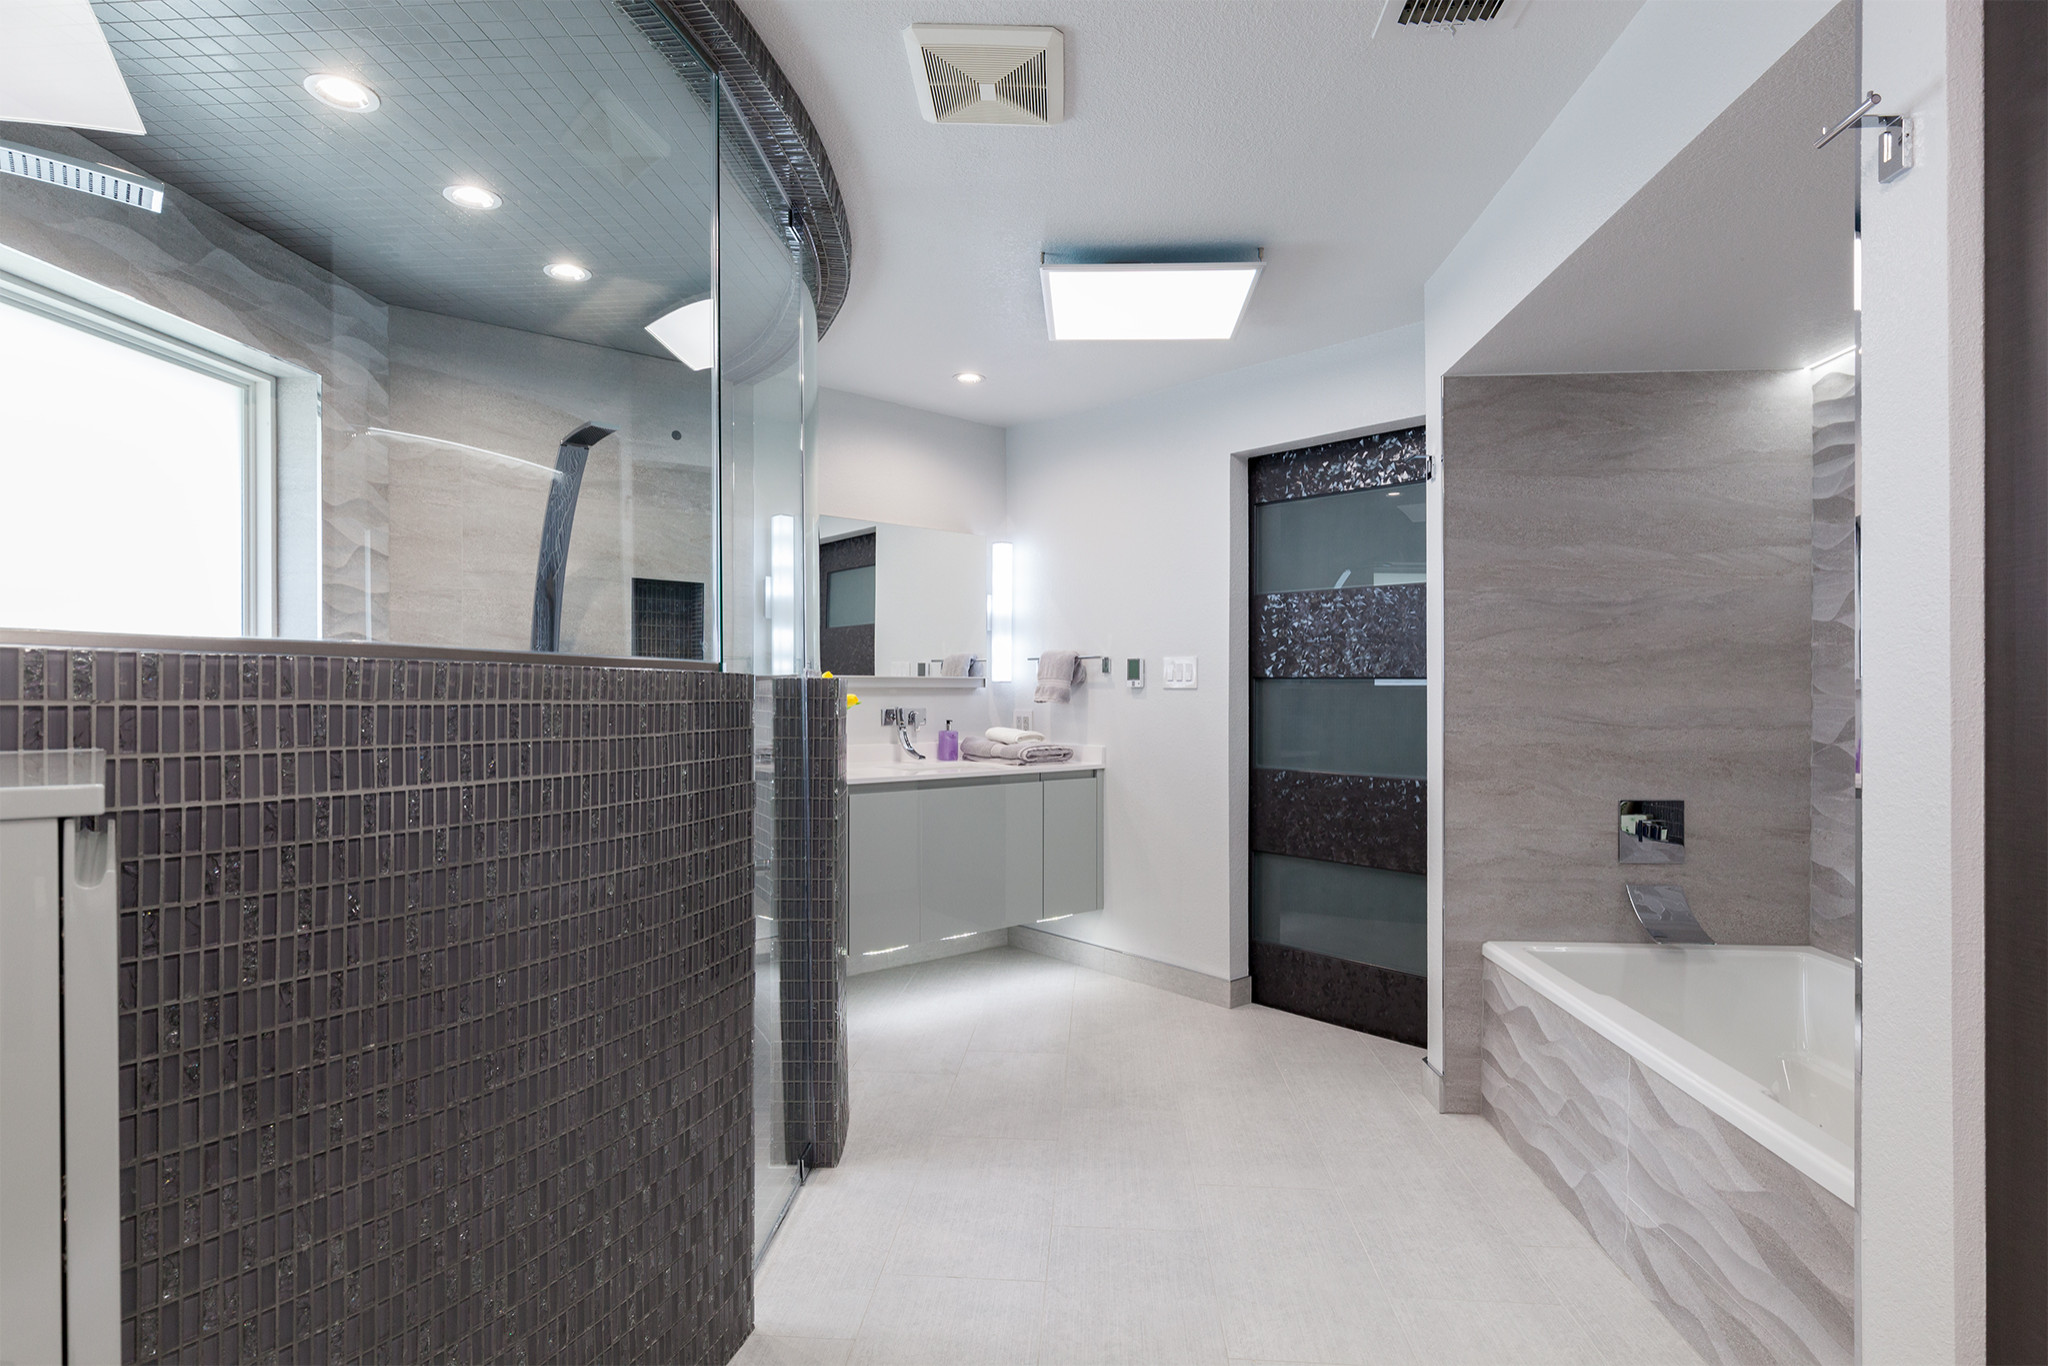 Spa Bath With Shower for Two